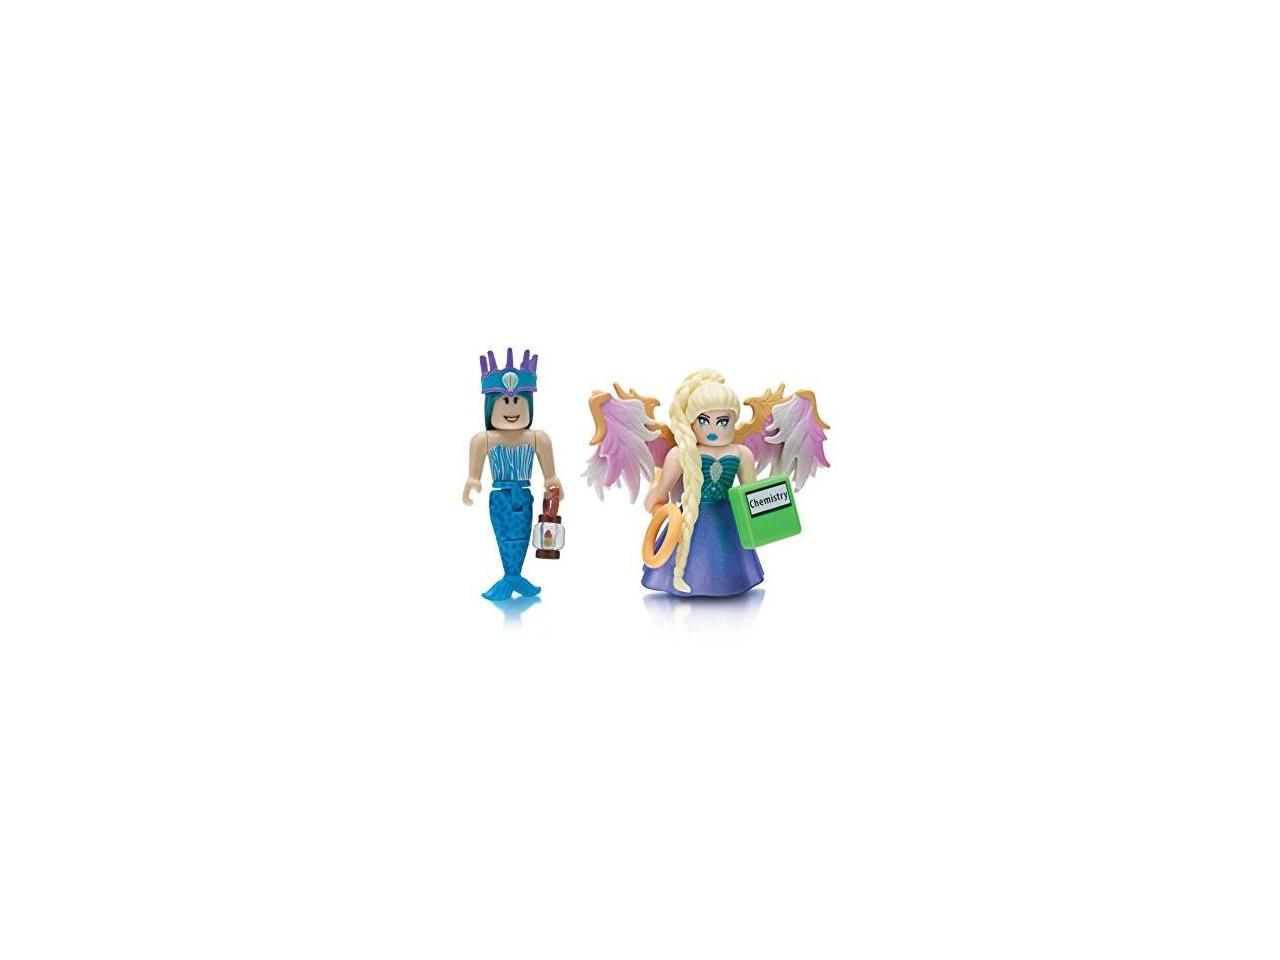 Roblox Celebrity Collection Neverland Lagoon Crown Collector And Royale High School Enchantress Two Figure Pack Newegg Com